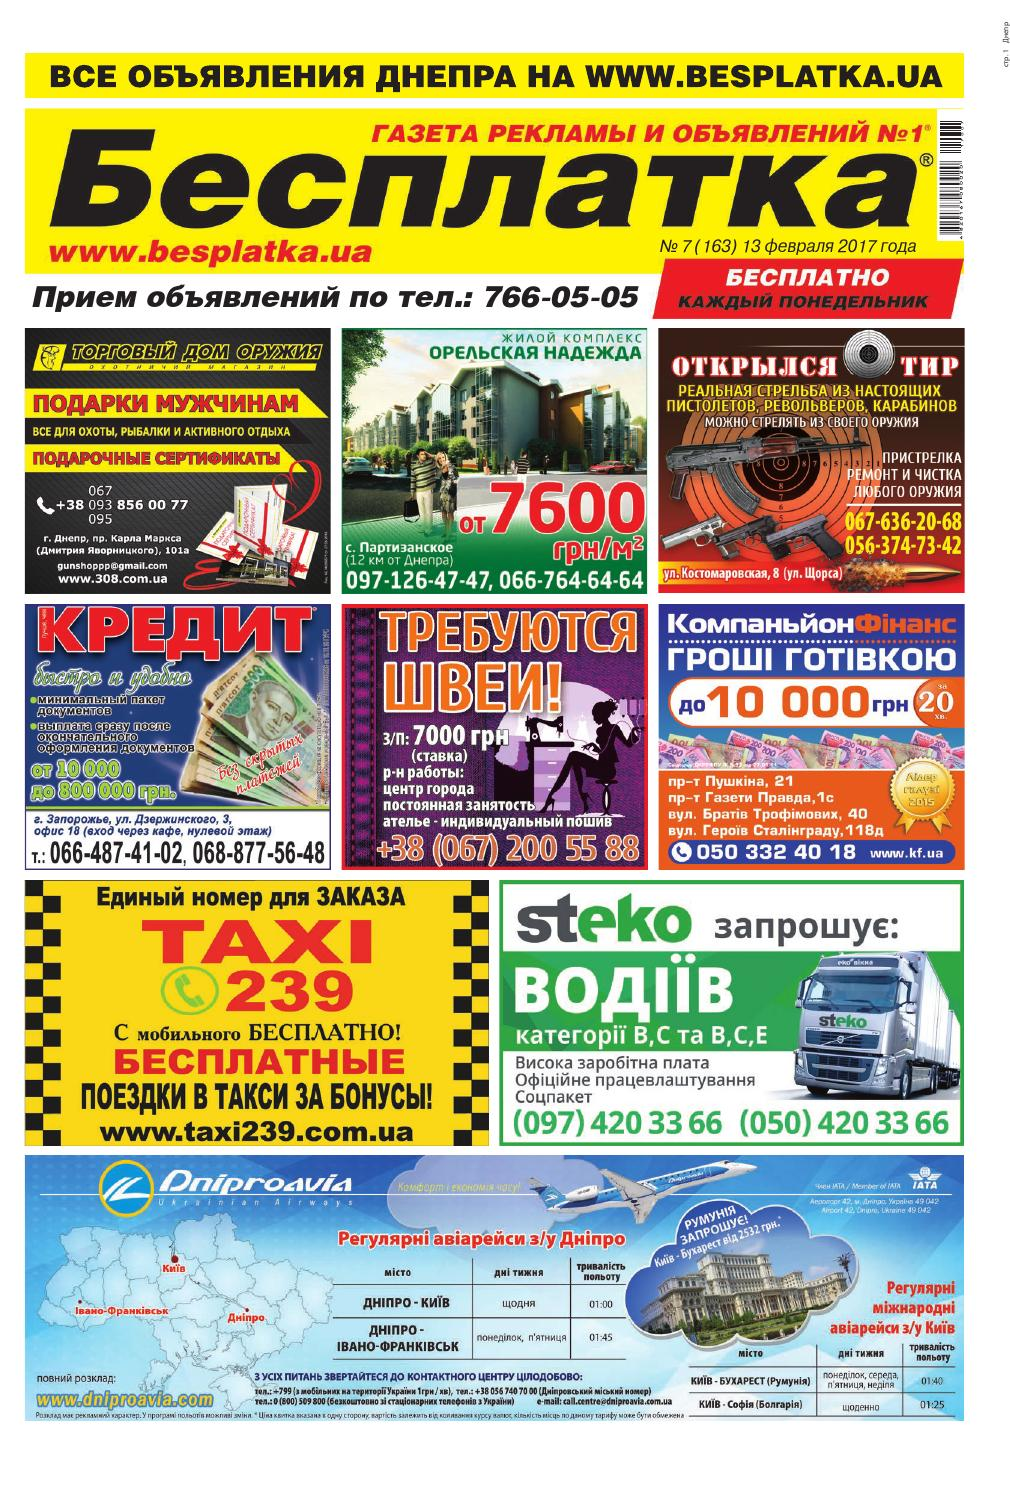 4597e9cd8b18 Besplatka  7 Днепр by besplatka ukraine - issuu